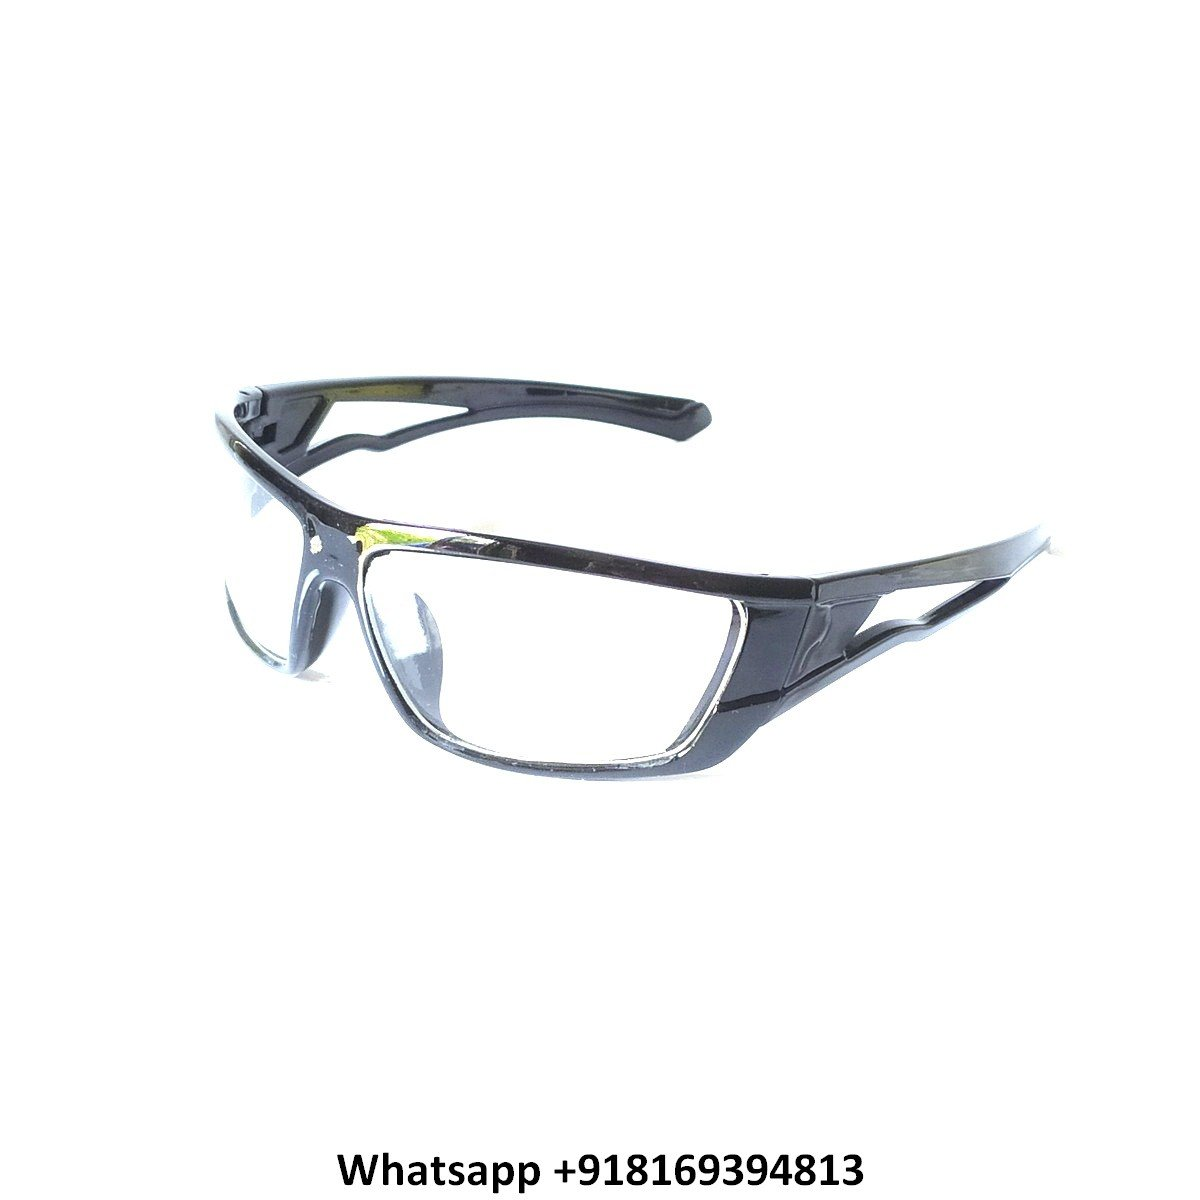 Day Night Driving Glasses for Men and Women Sunglasses with Clear Lens M10